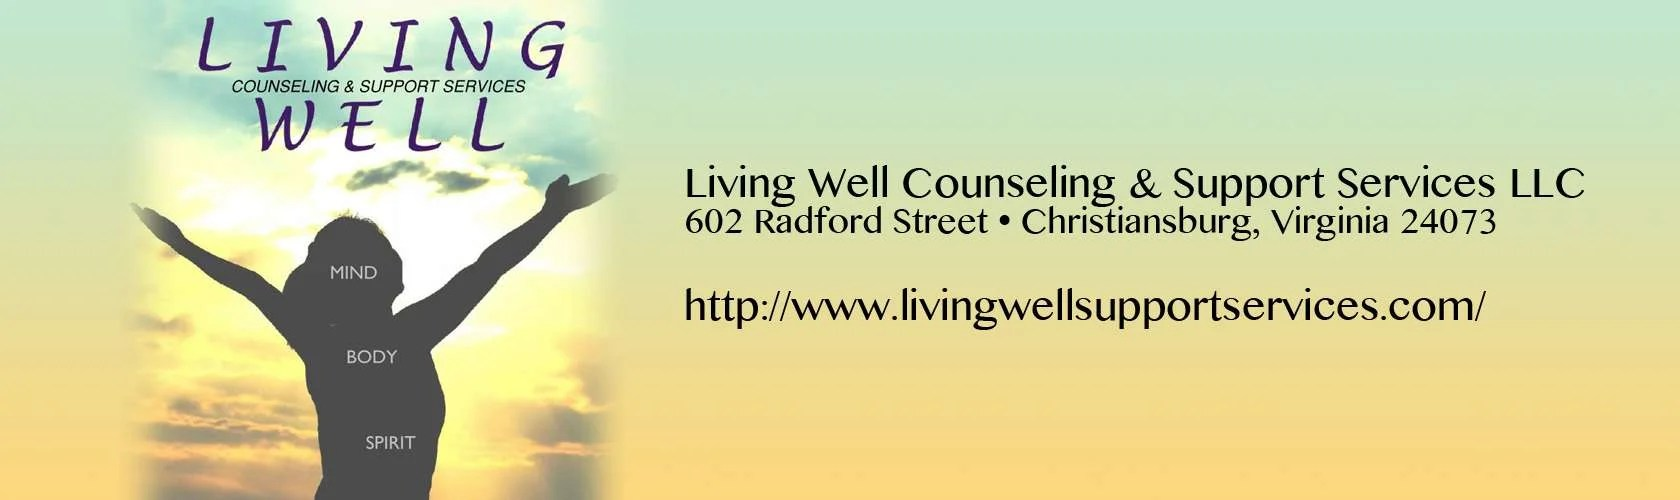 Living Well Counseling